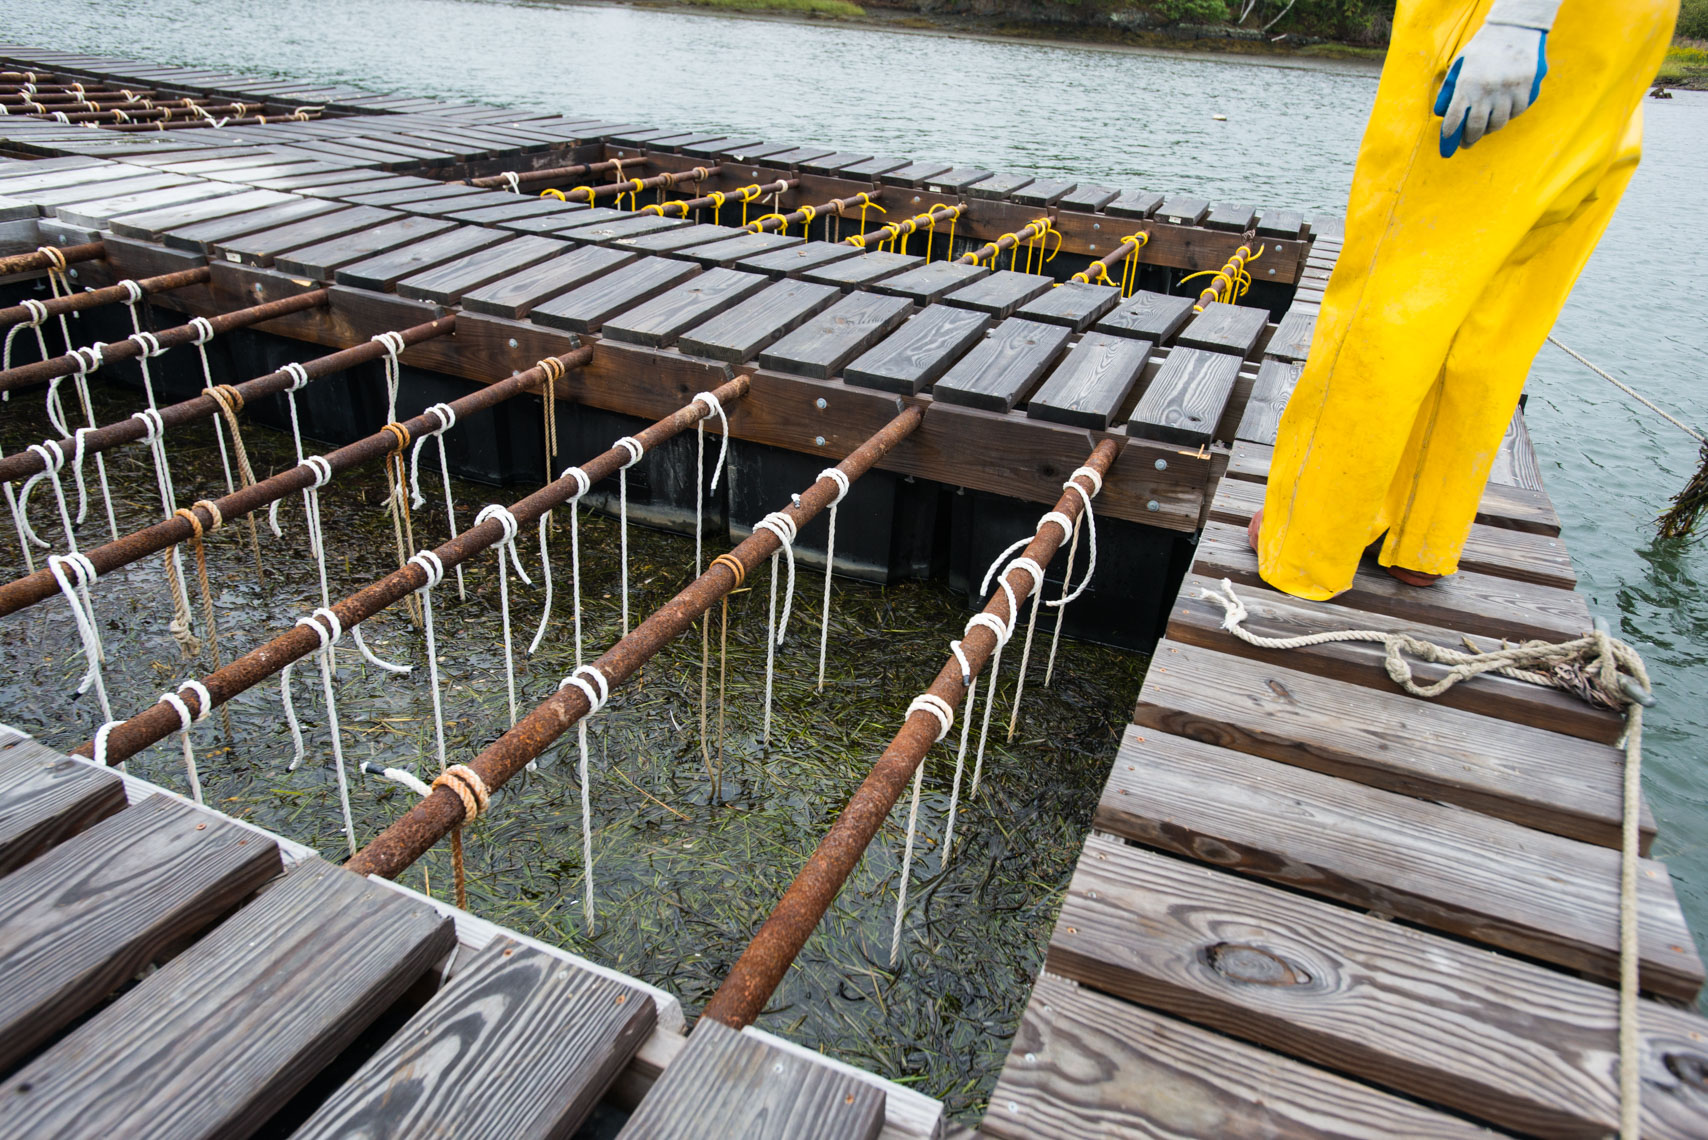 a dock made for growing oysters